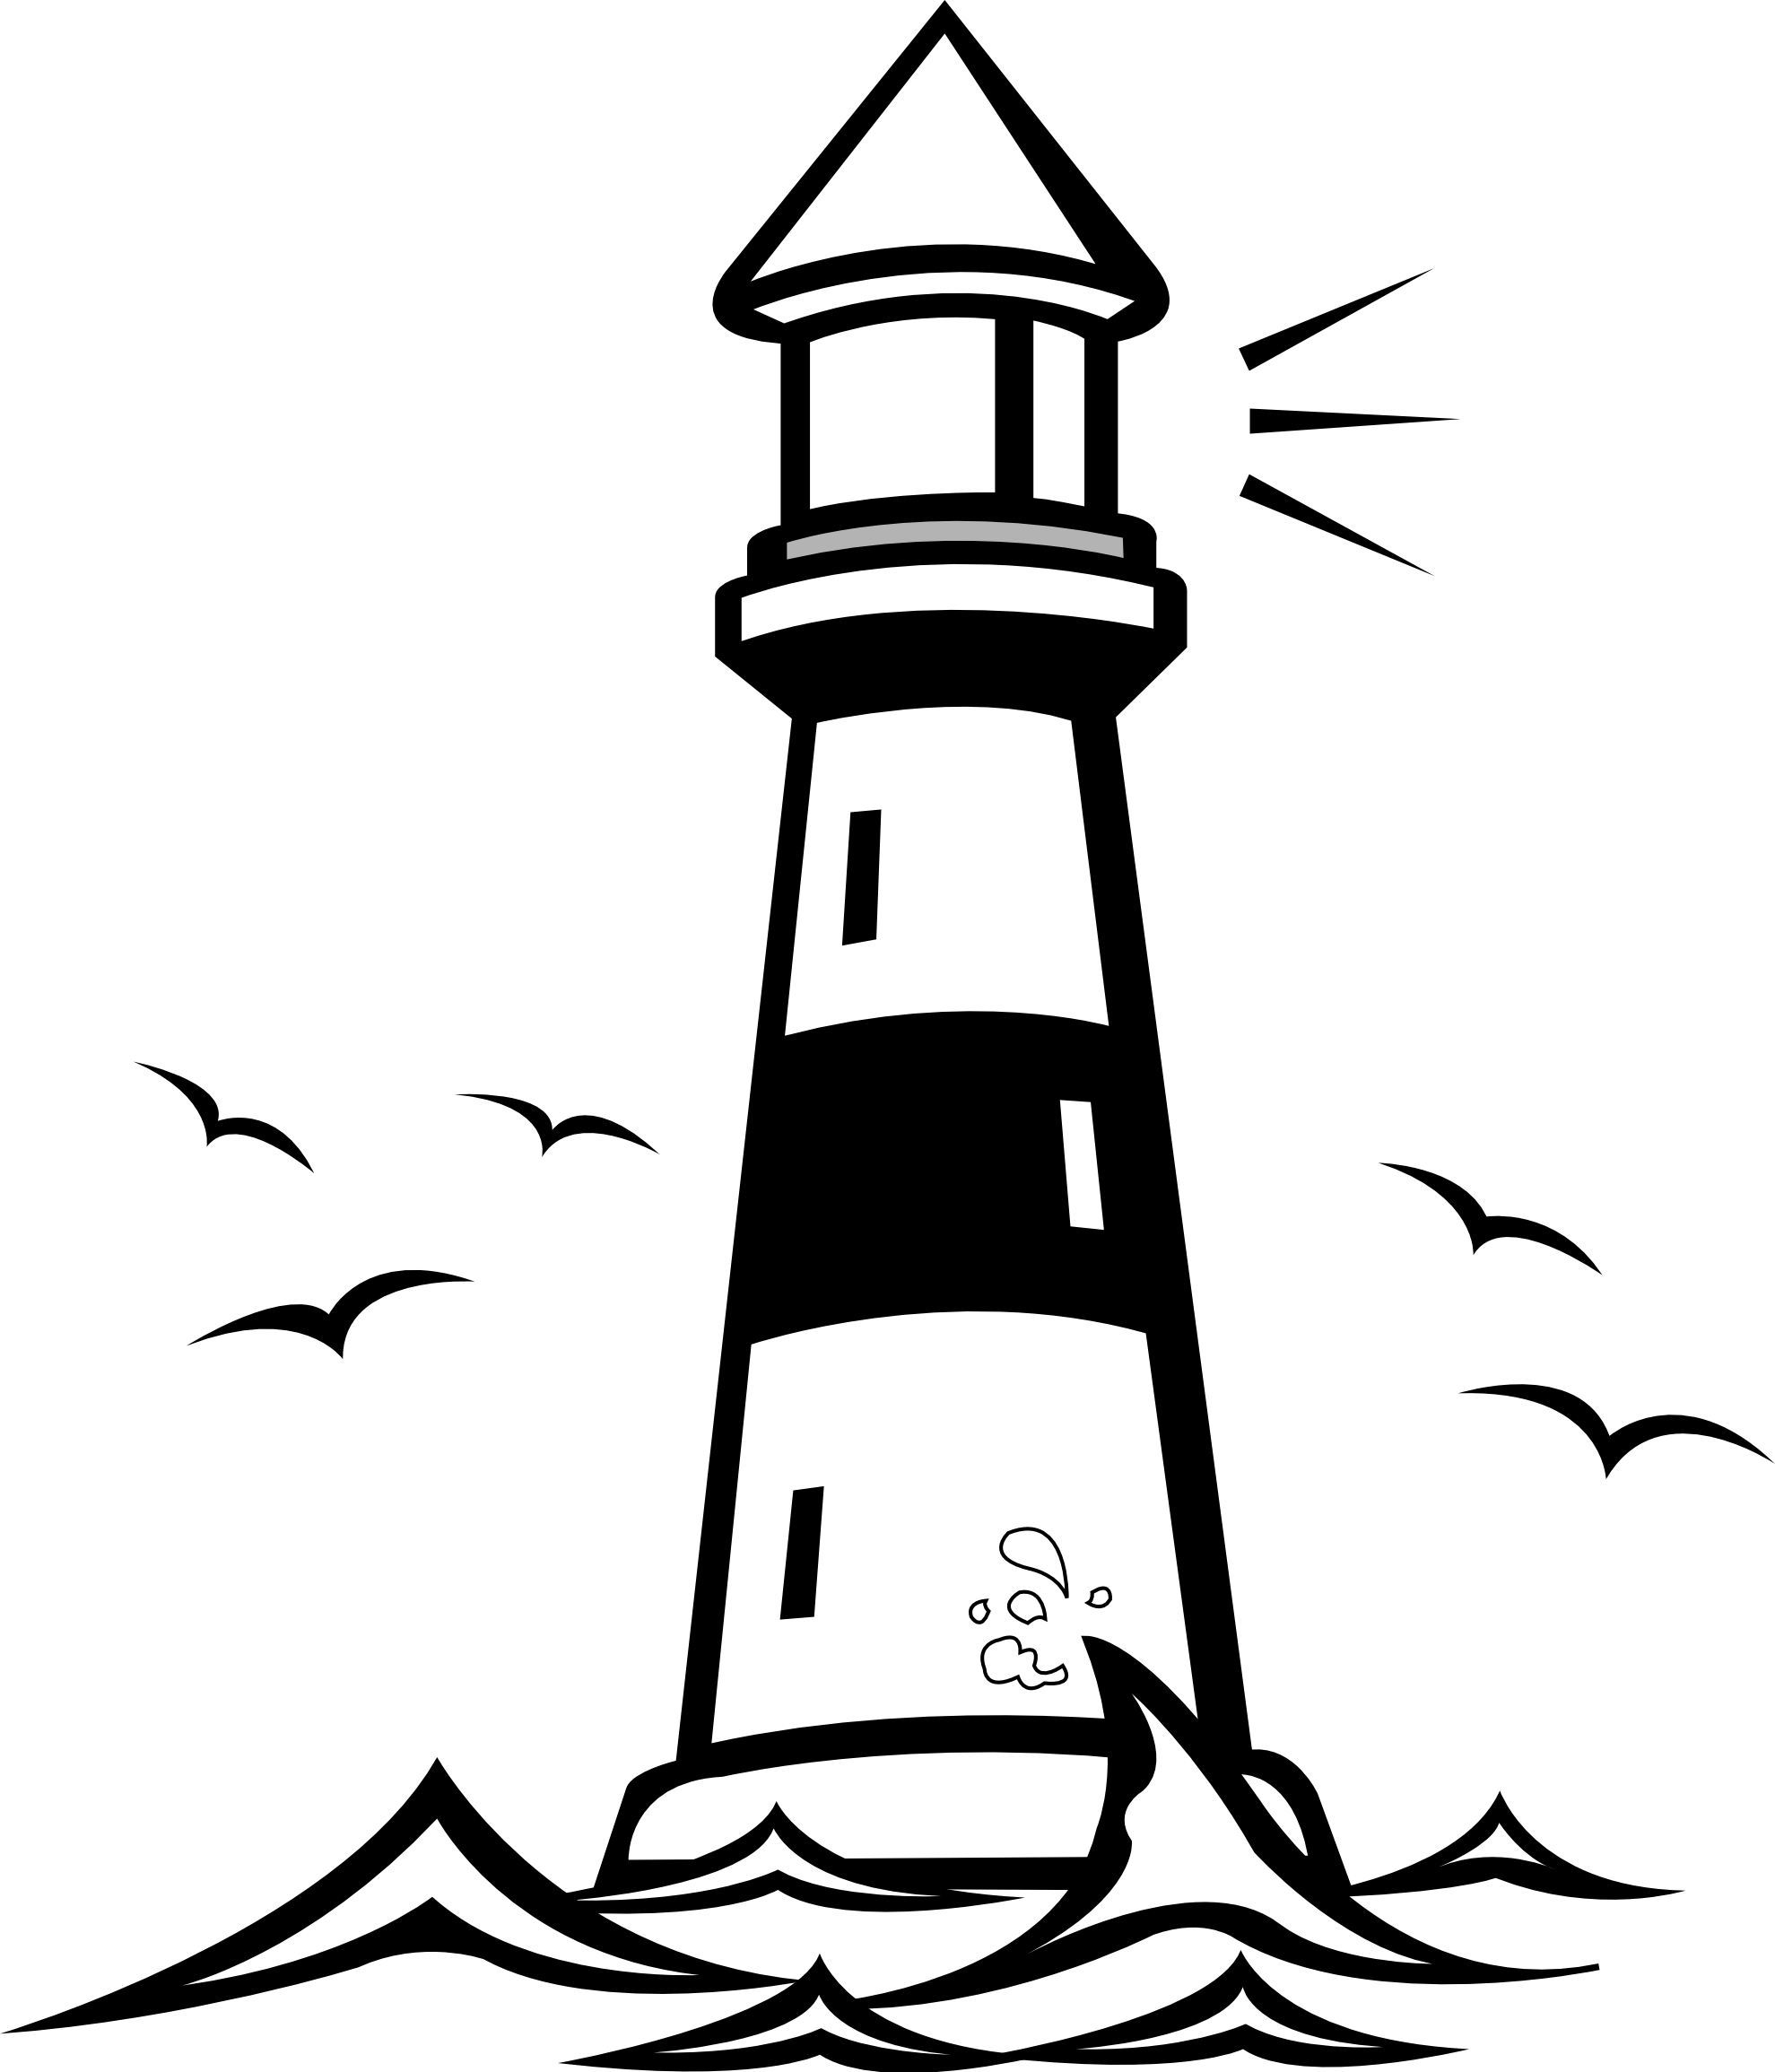 png freeuse download Lighthouse projects to try. Stone wall clipart black and white.